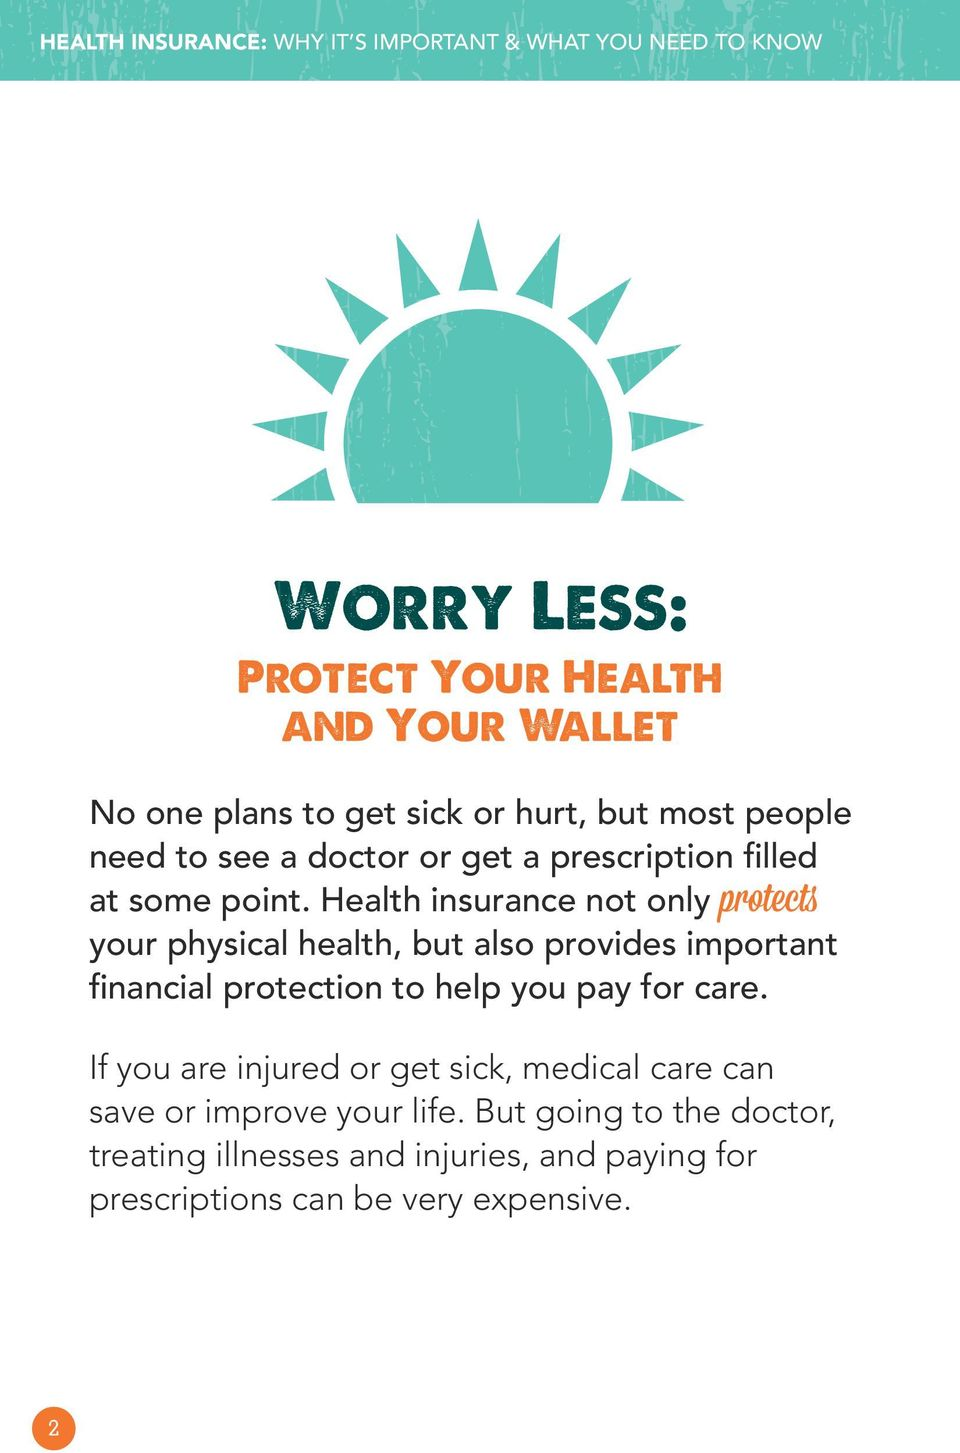 Health insurance not only protects your physical health, but also provides important financial protection to help you pay for care.